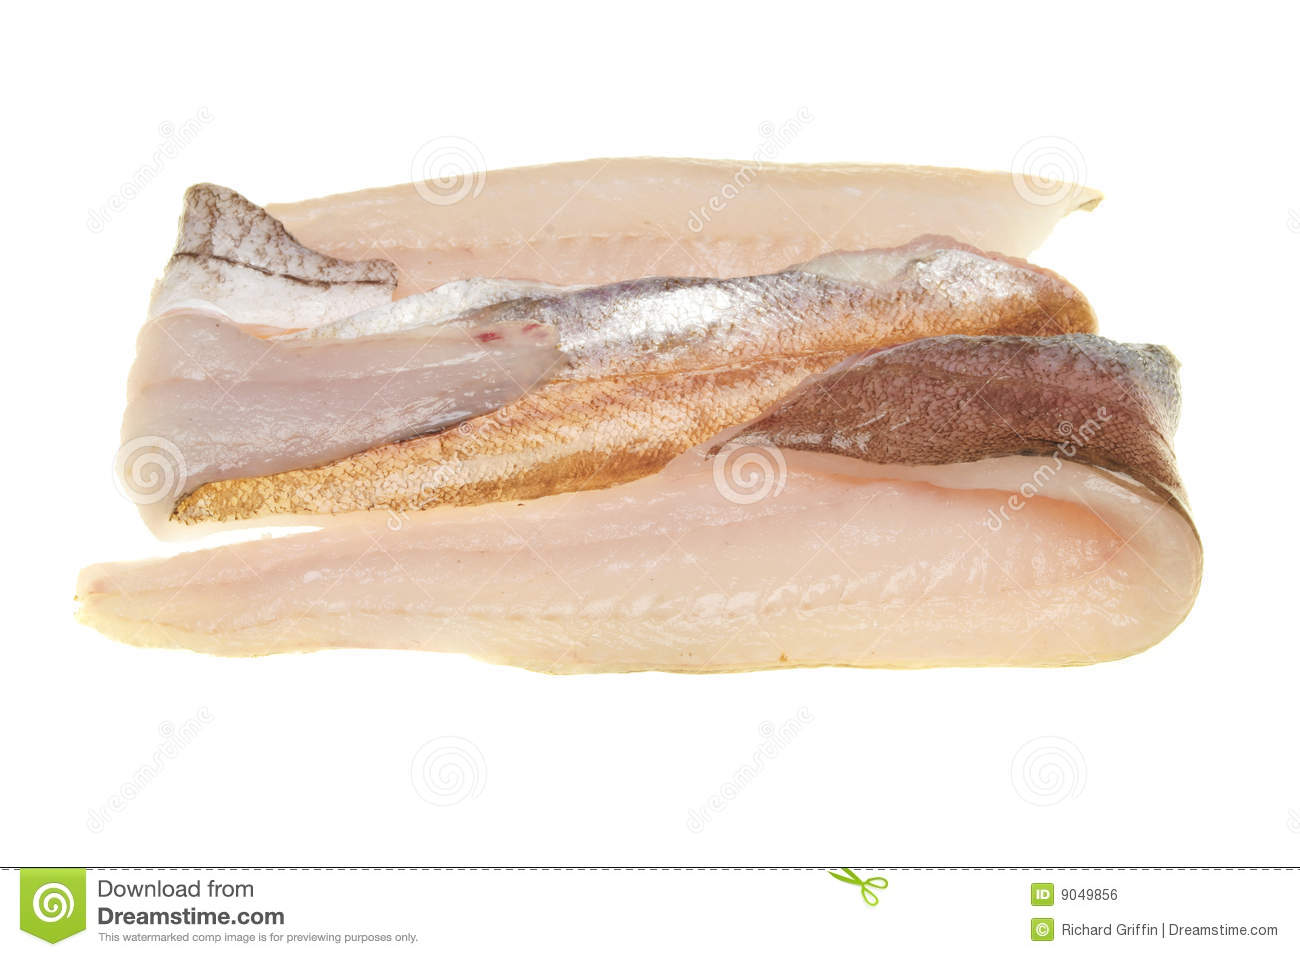 Whiting fillets stock photo image of fresh white scale for Whiting fish fillet